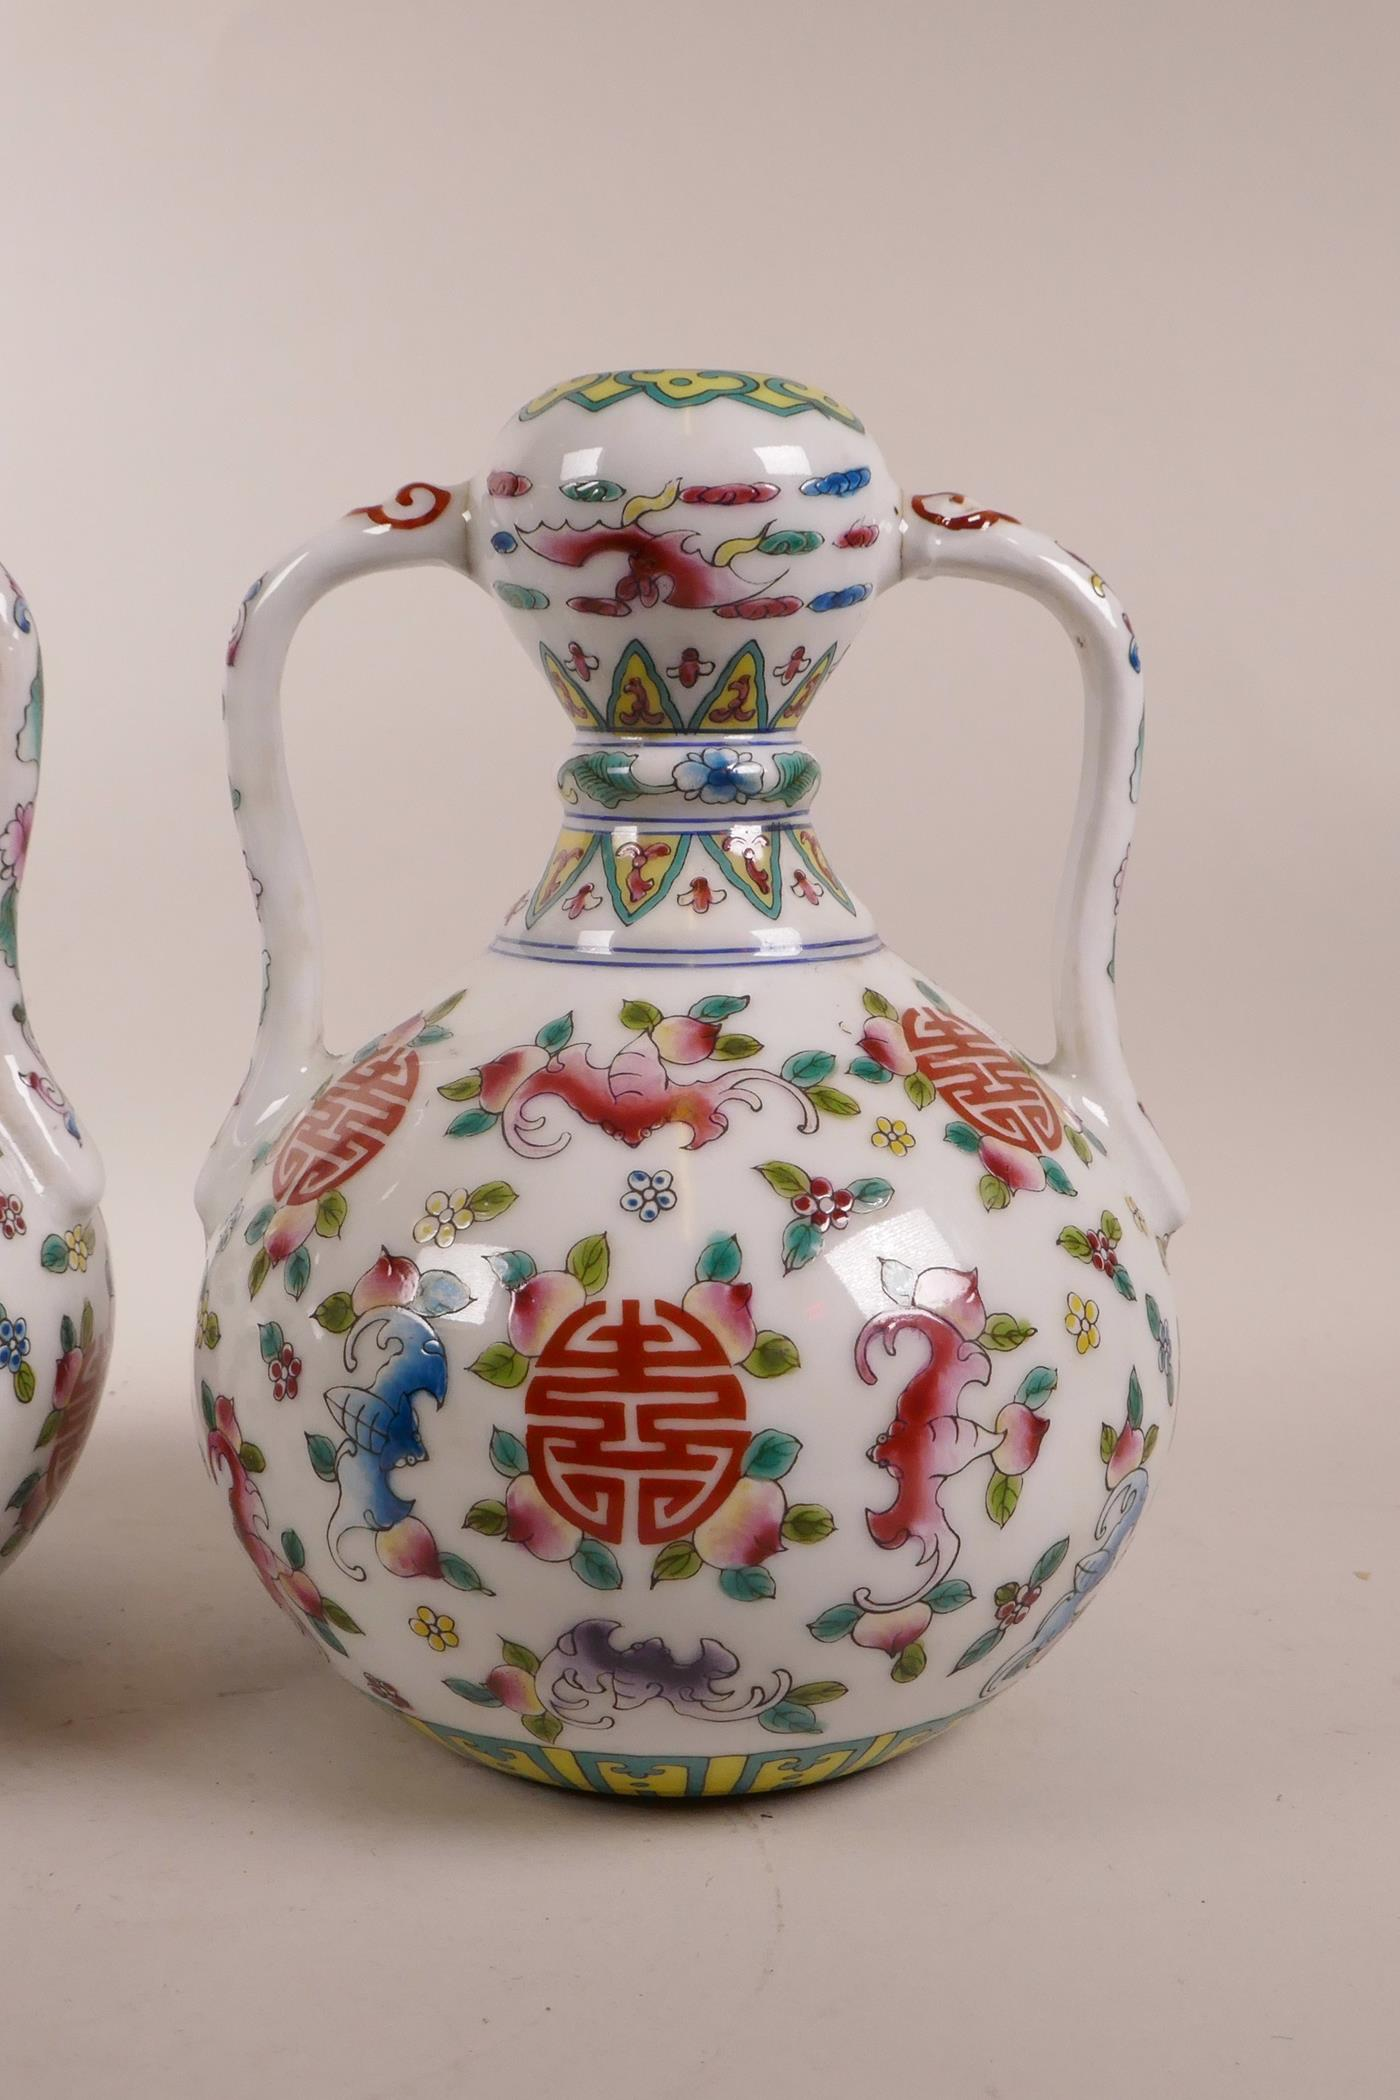 Lot 70 - A pair of Chinese polychrome porcelain garlic head shaped vases with two handles, decorated with